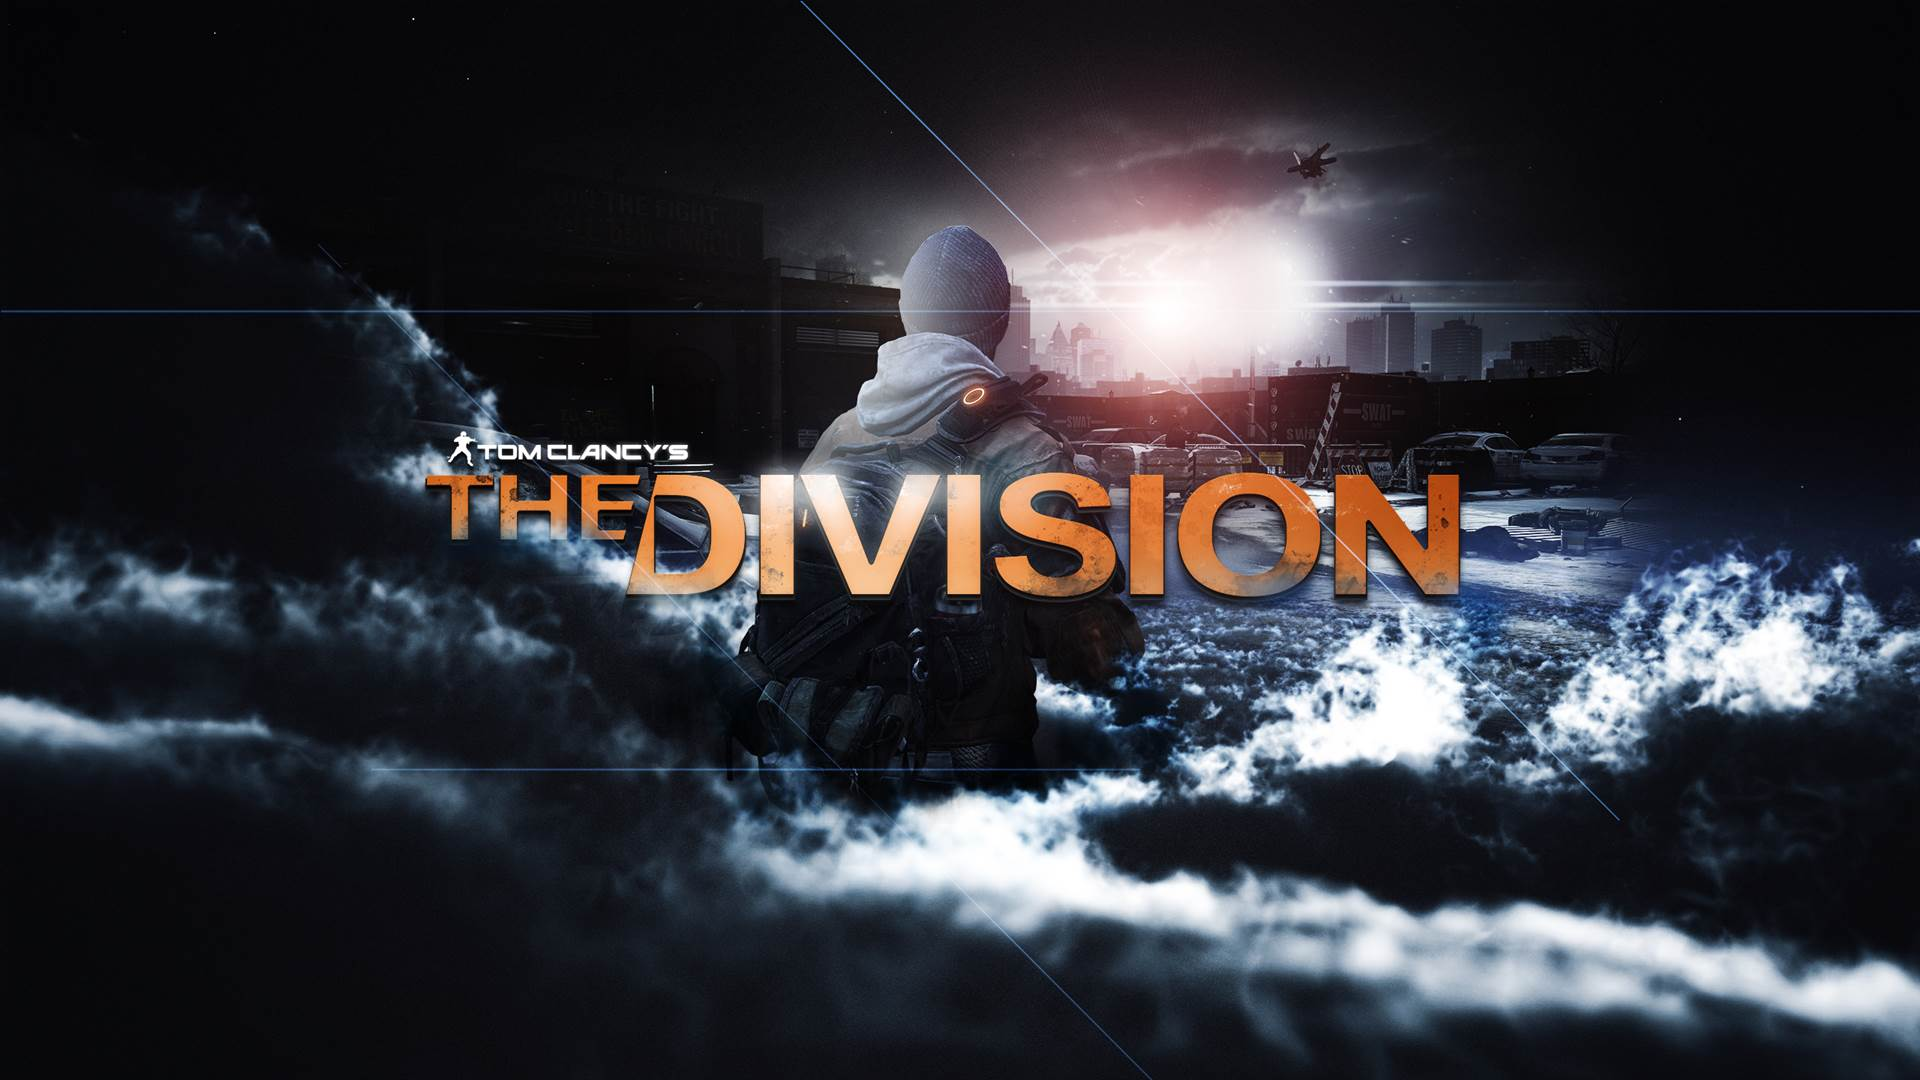 High Resolution Gaming Wallpapers: Tom Clancy's The Division Wallpapers High Resolution And